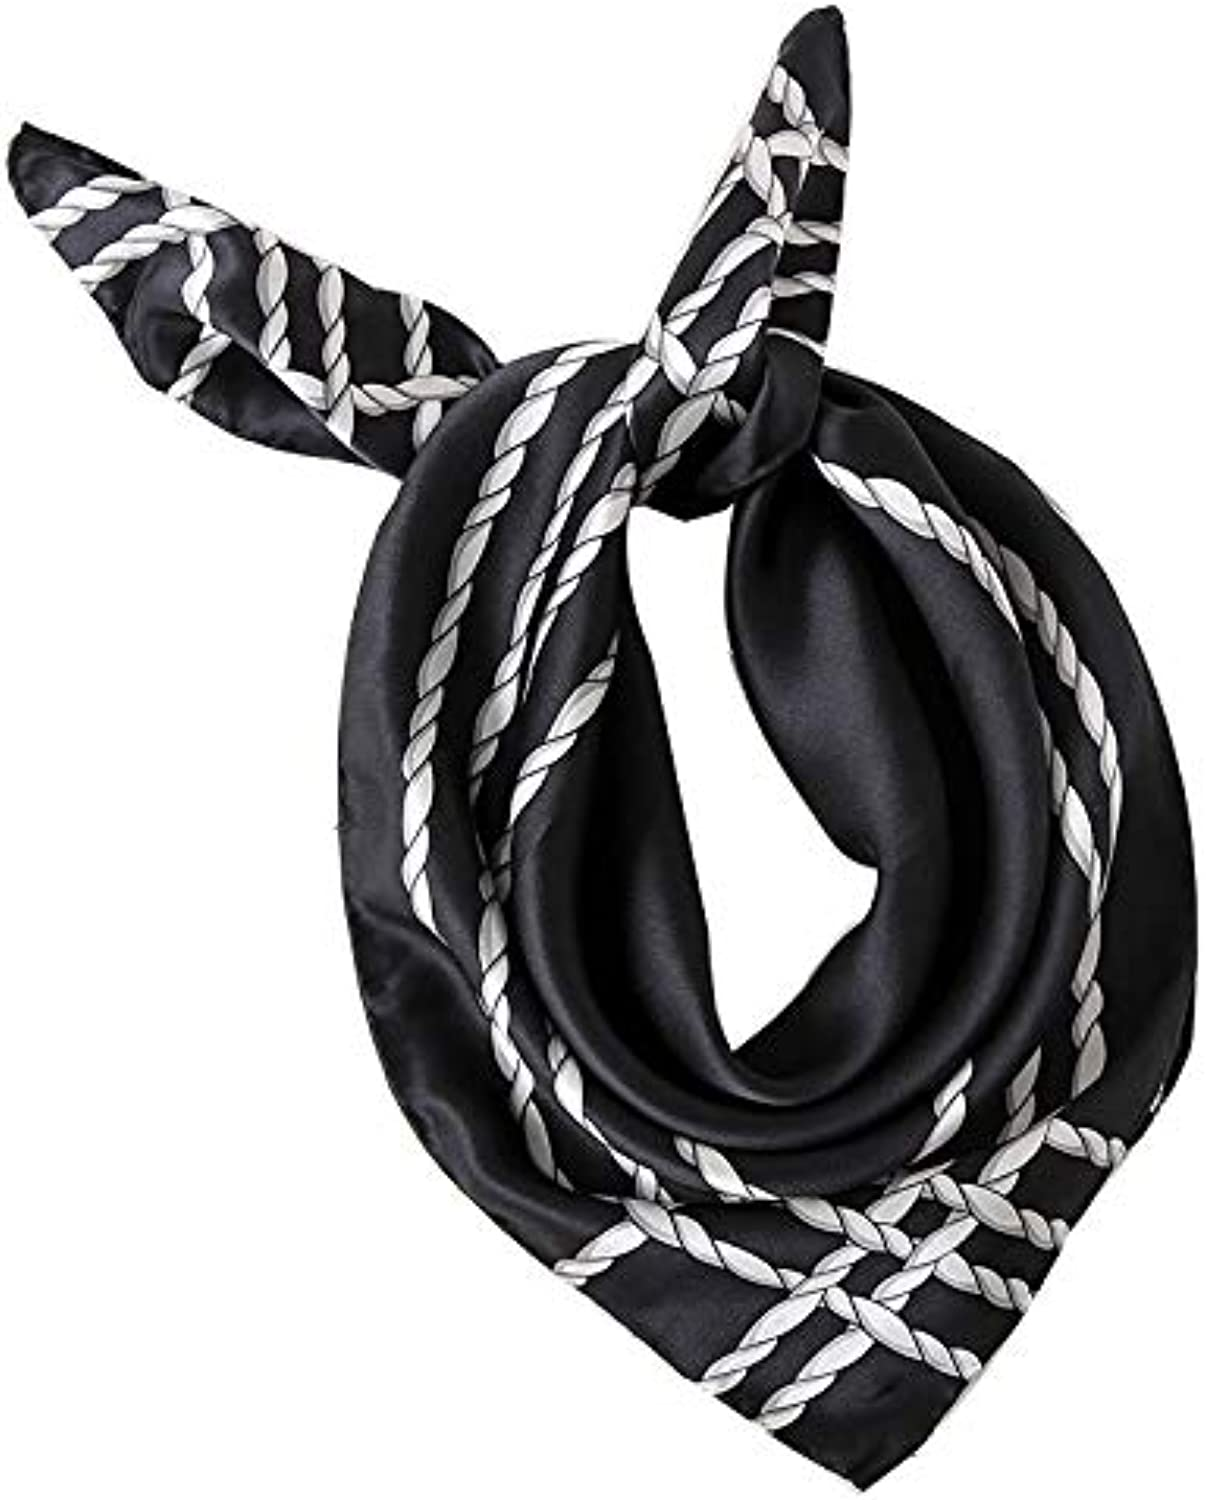 100% Silk Scarf Handmade Curling Small Square Towel Quality Silk Scarf Short Scarf Shawl Ladies Silk Scarf, 66CM66CM (color   Black)